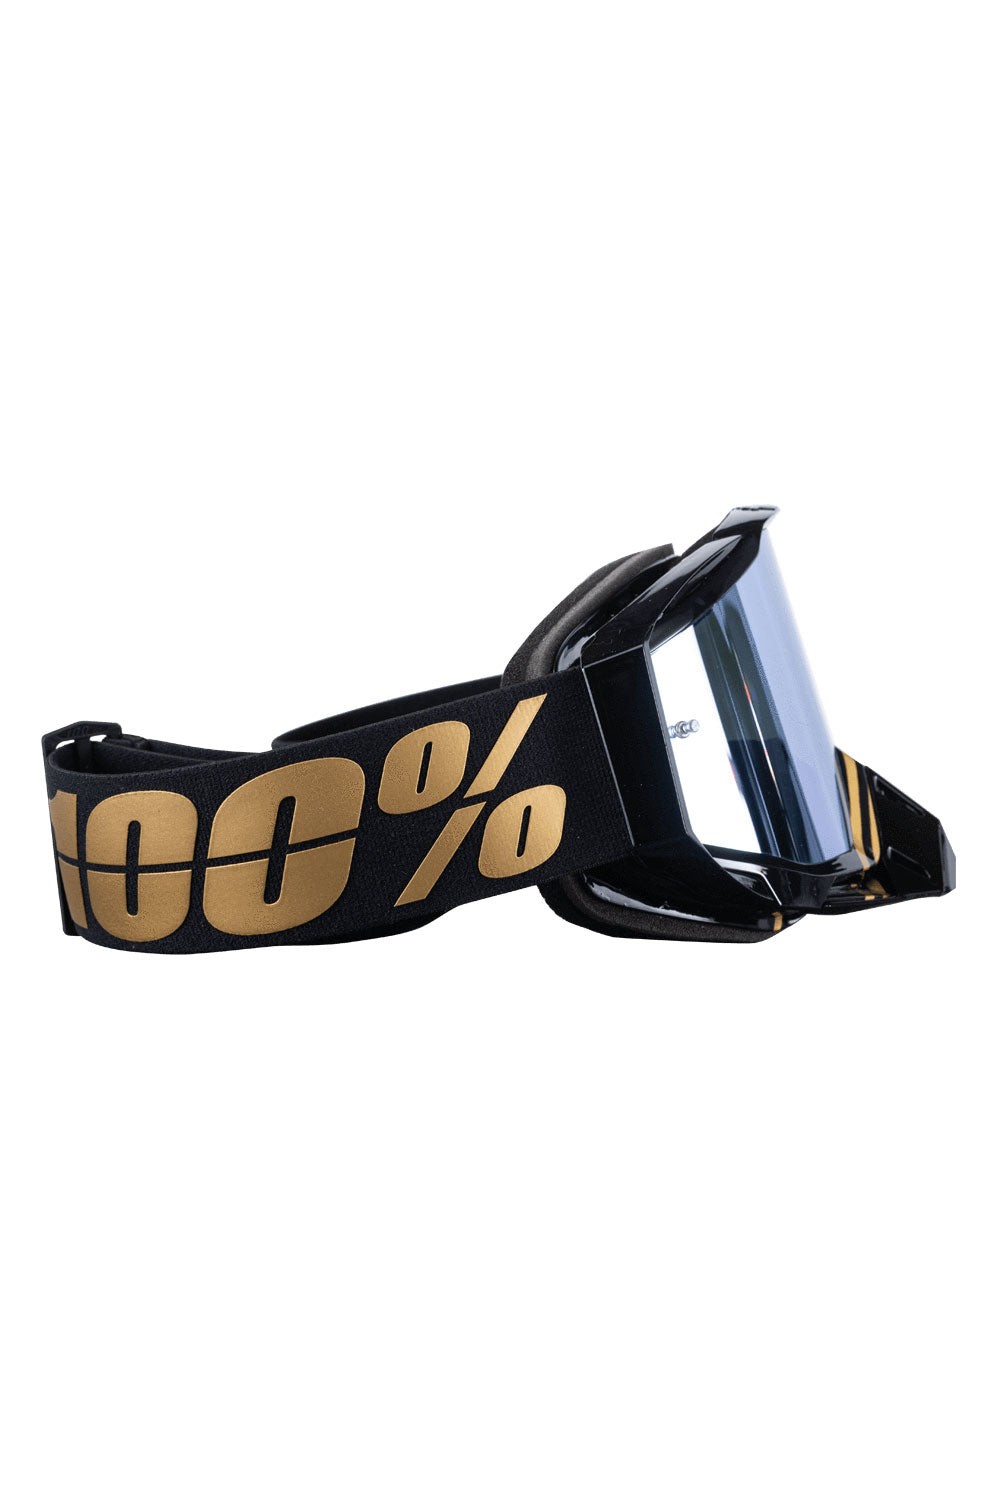 Crank Brothers X 100% Racecraft Goggles Gold/Black Hiper Mirror Lens